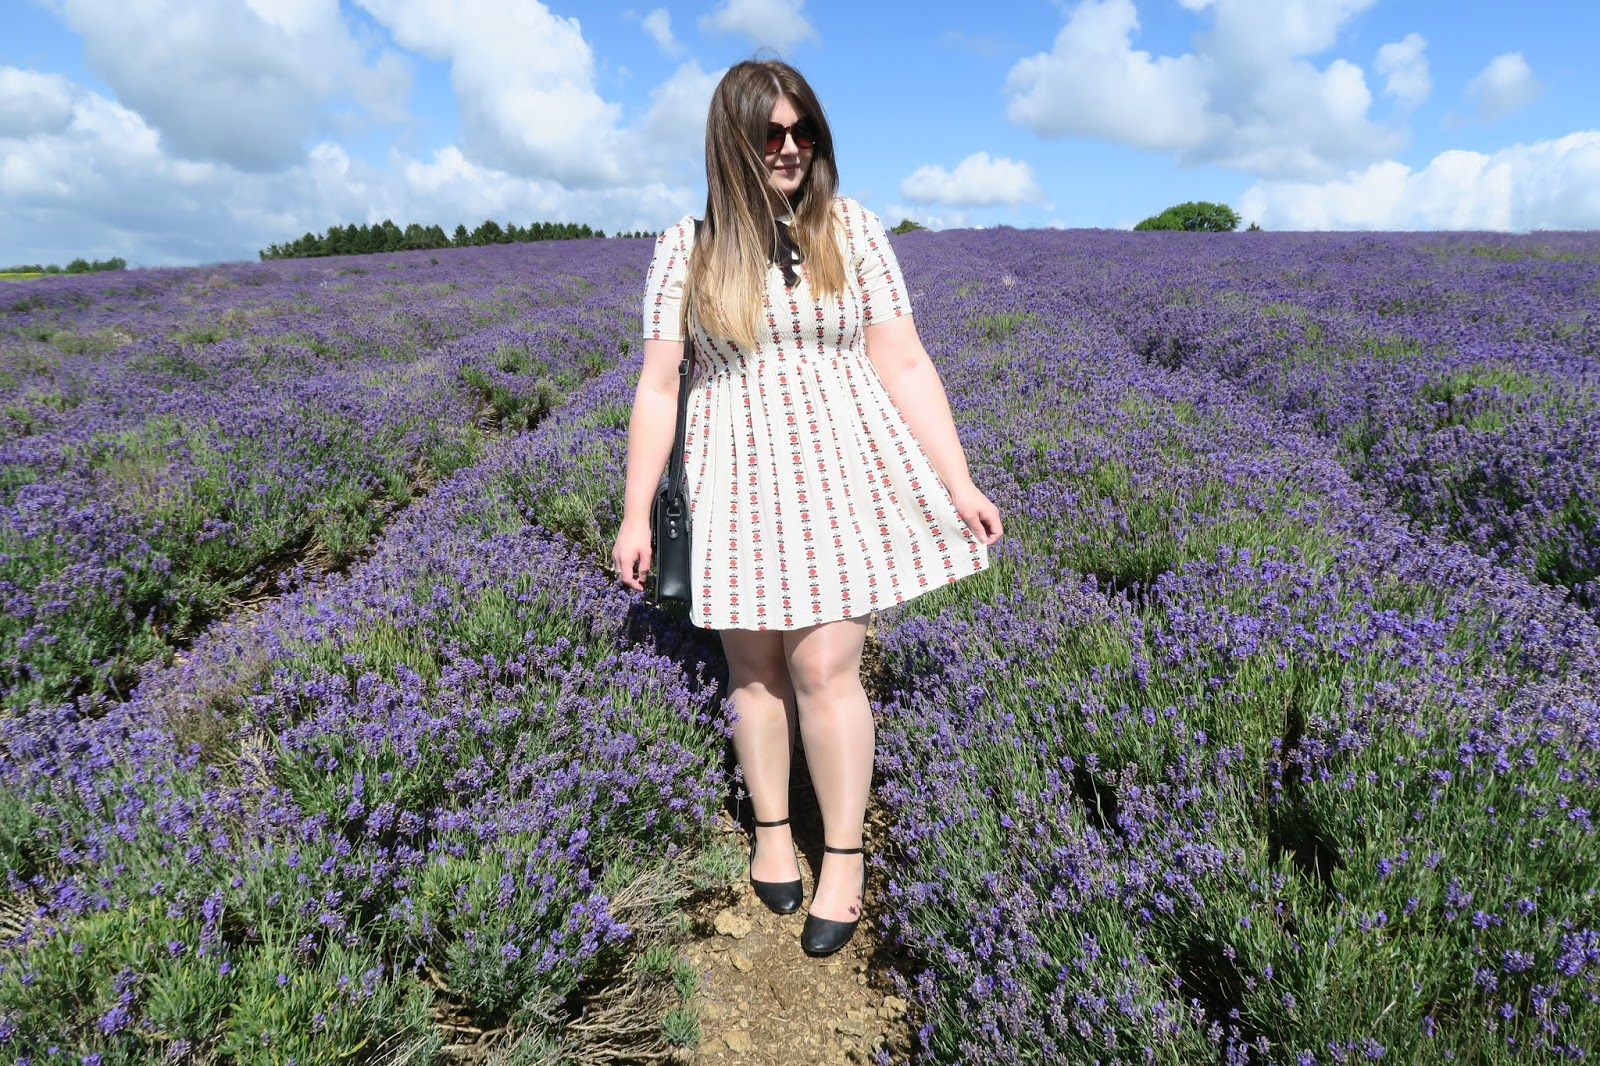 Grace wearing a white dress standing in the centre of a lavender field